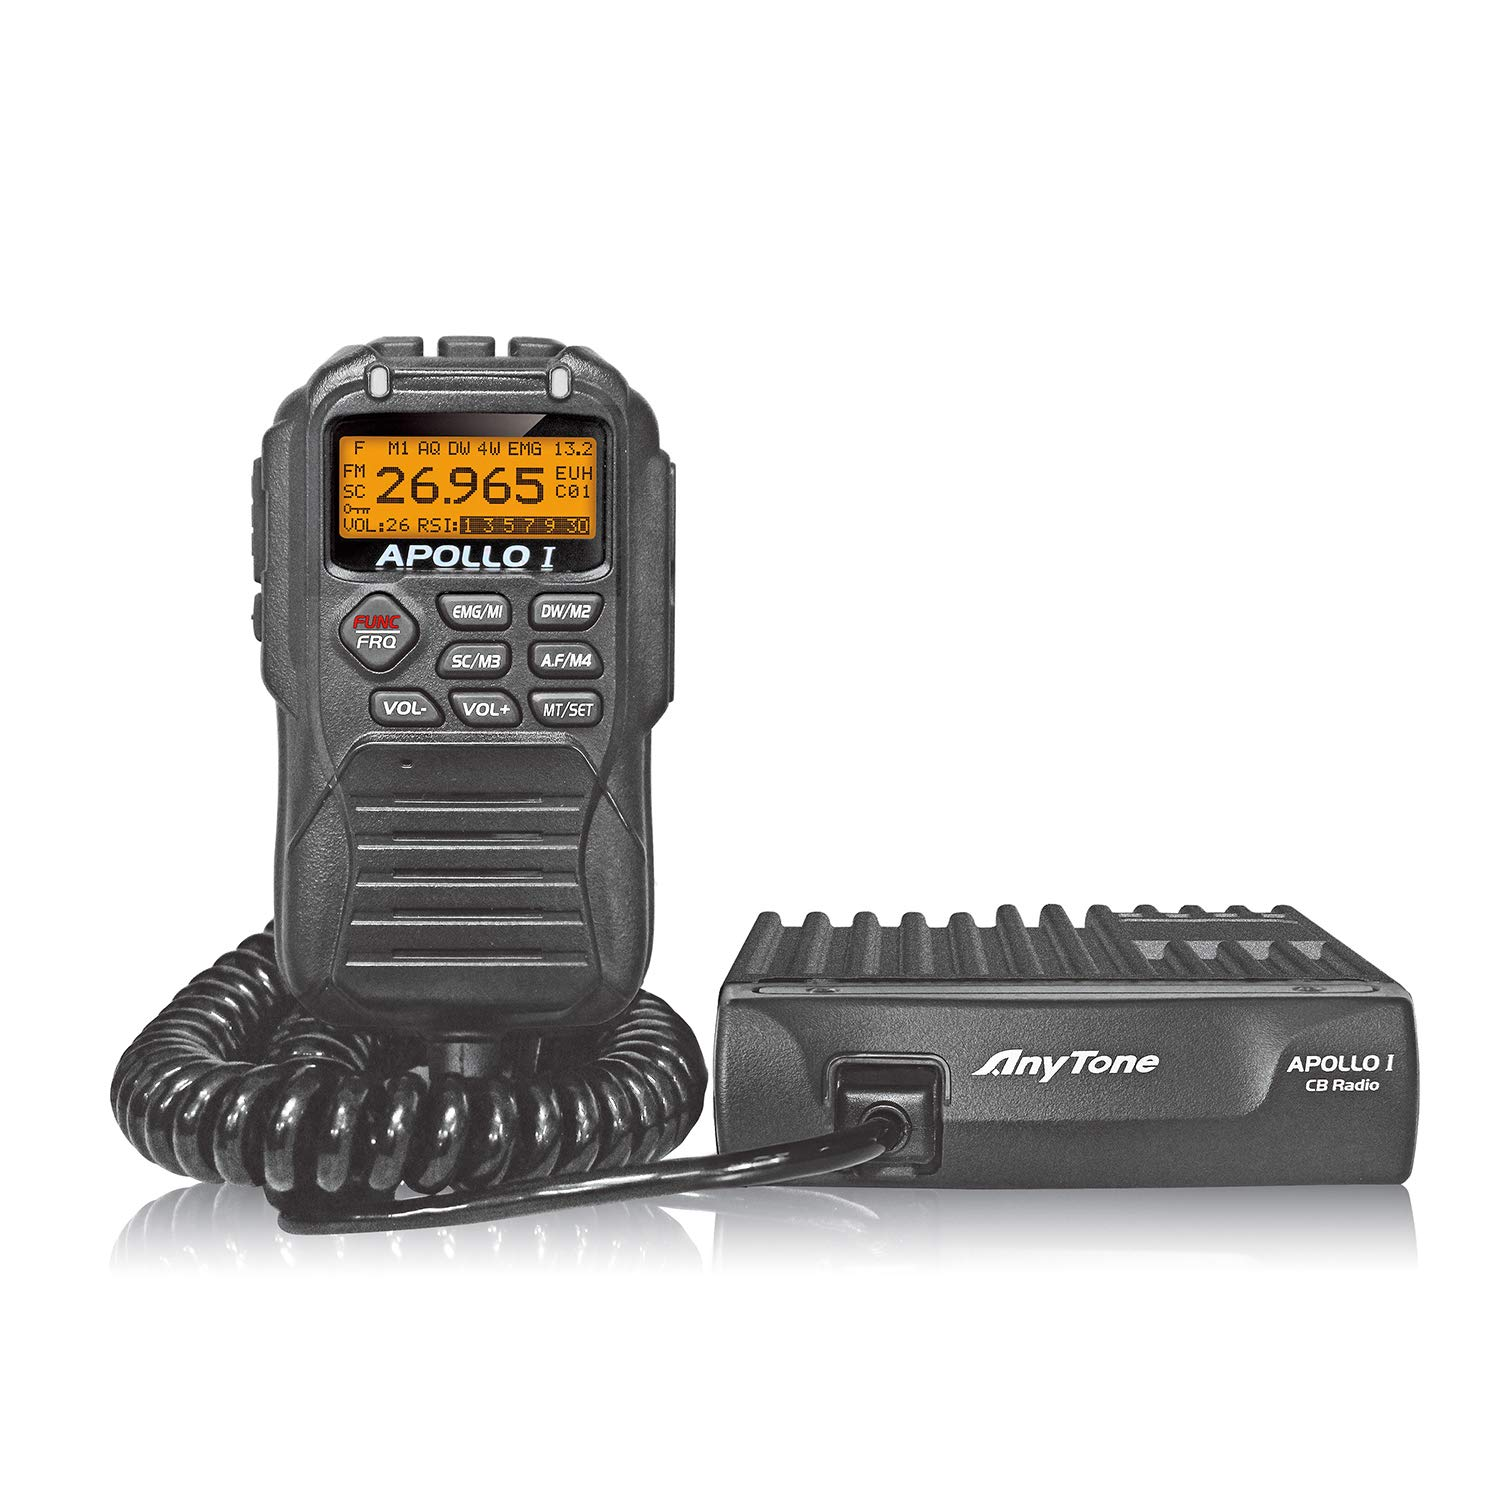 AnyTone APOLLO I 10 Meter Amateur Radio for truck, LCD display and function key in microphone, AM PEP power over 17W by AnyTone